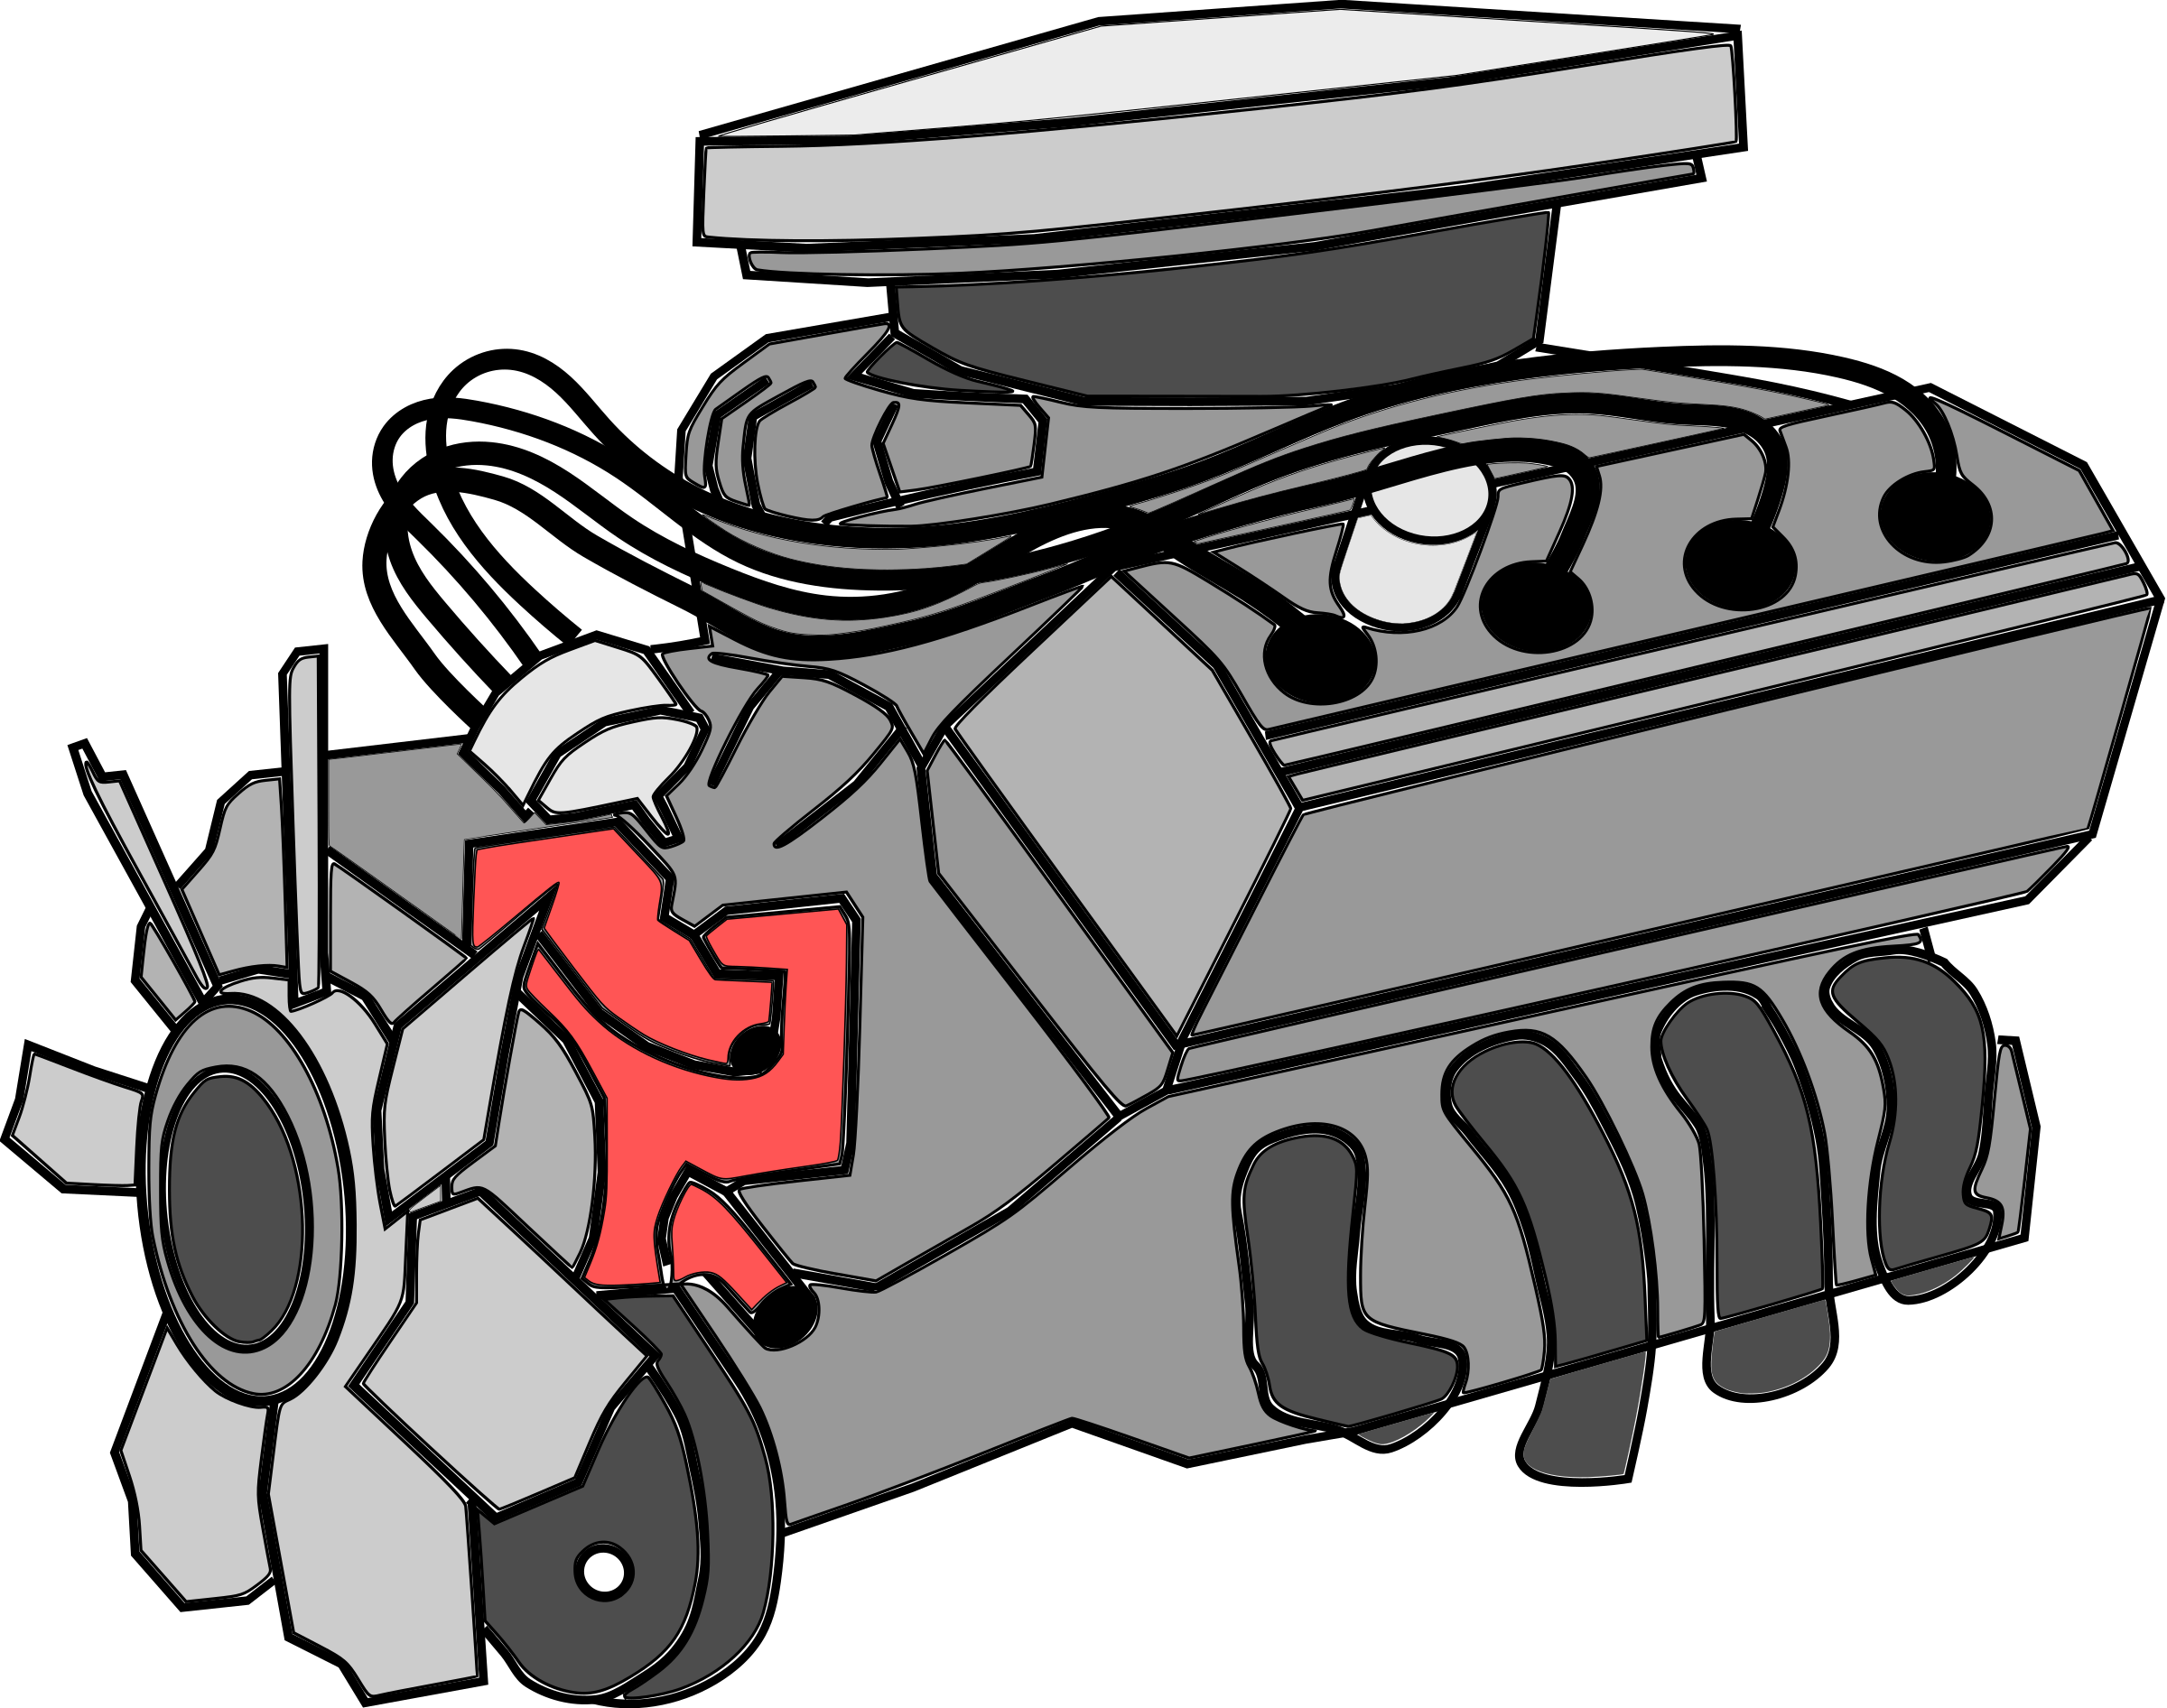 Engine clipart vehicle engine. Pin by charudeal on